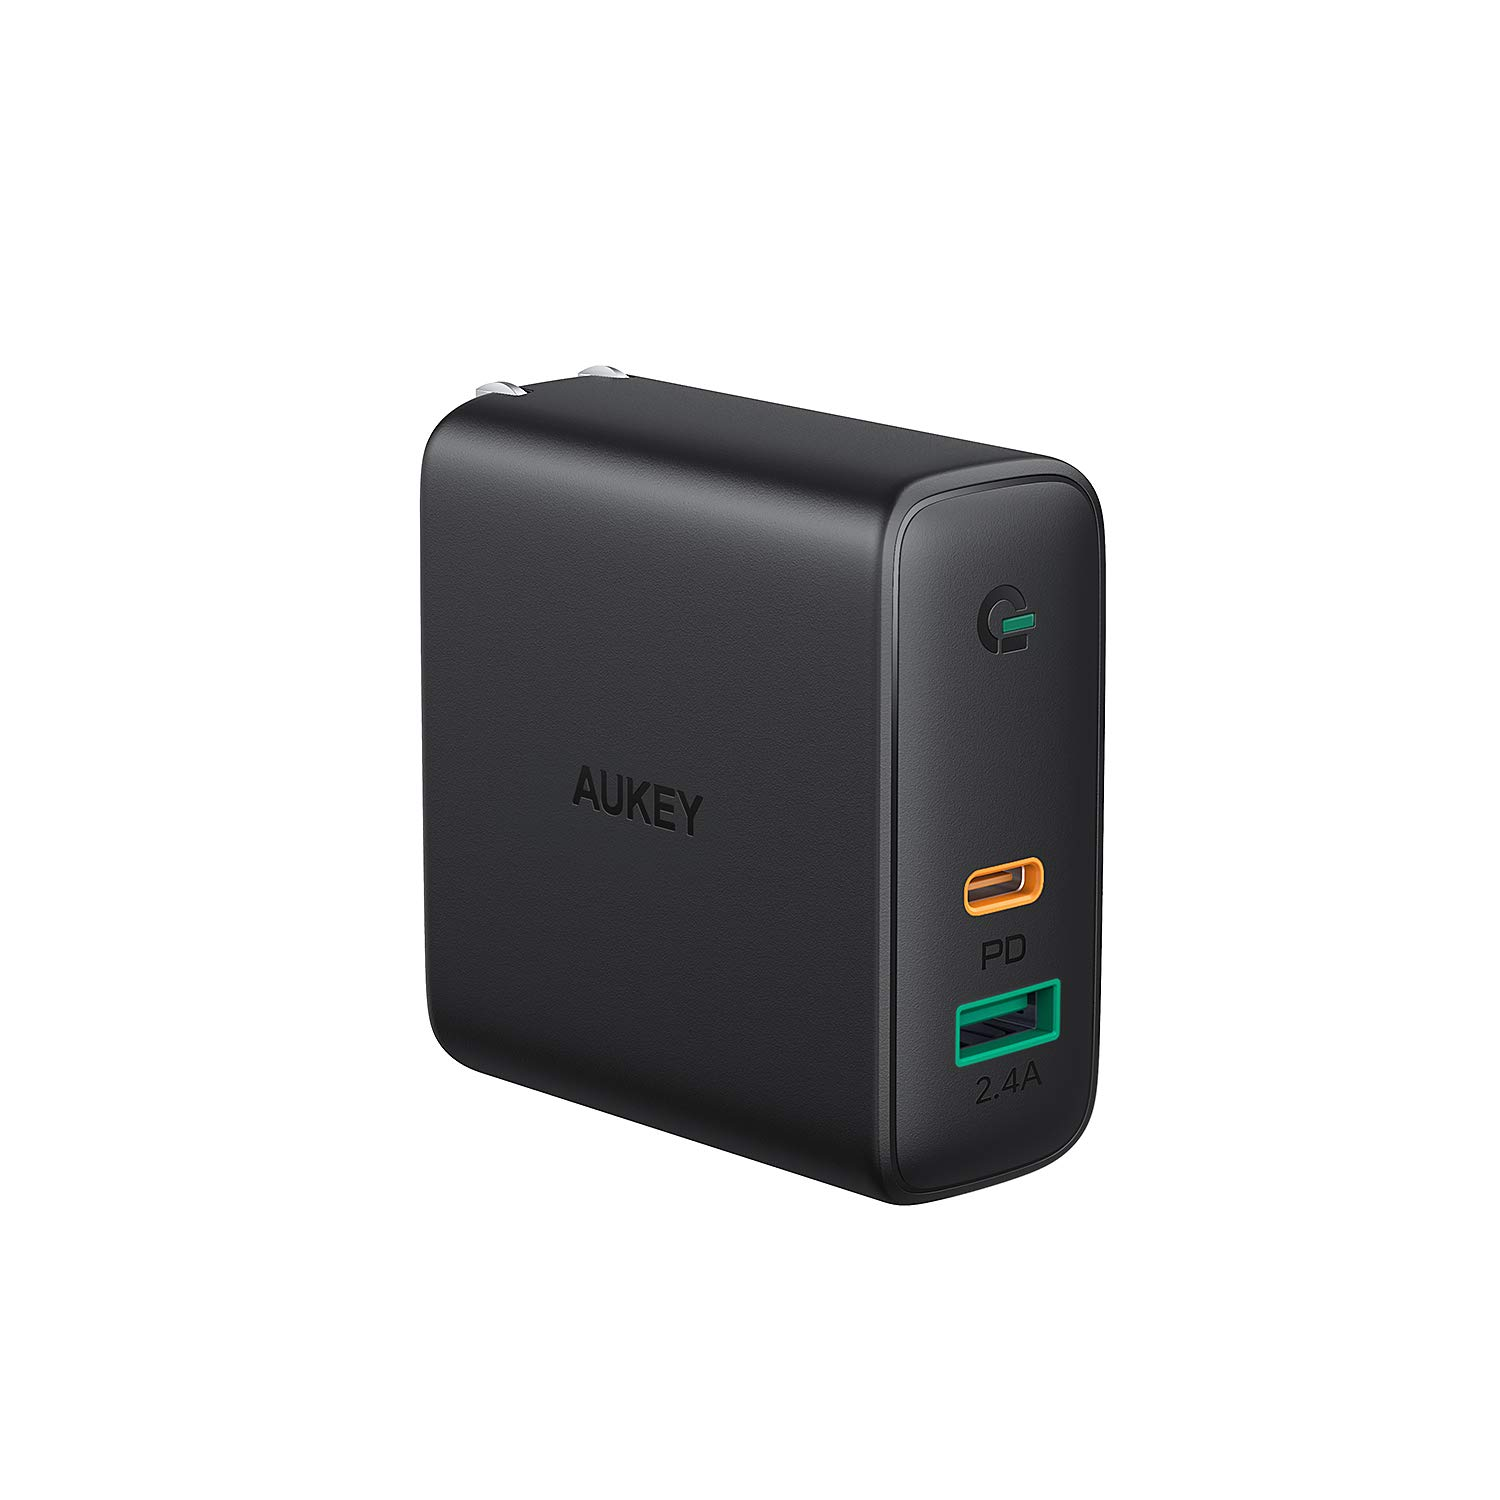 USB C Charger, AUKEY 60W Power Delivery Charger with Dynamic Detect & GaN Power Tech, Compatible with iPhone 11/11 Pro / 11 Pro Max, Pixel 3 / 3XL, MacBook Pro 13'', Airpods Pro and More by AUKEY